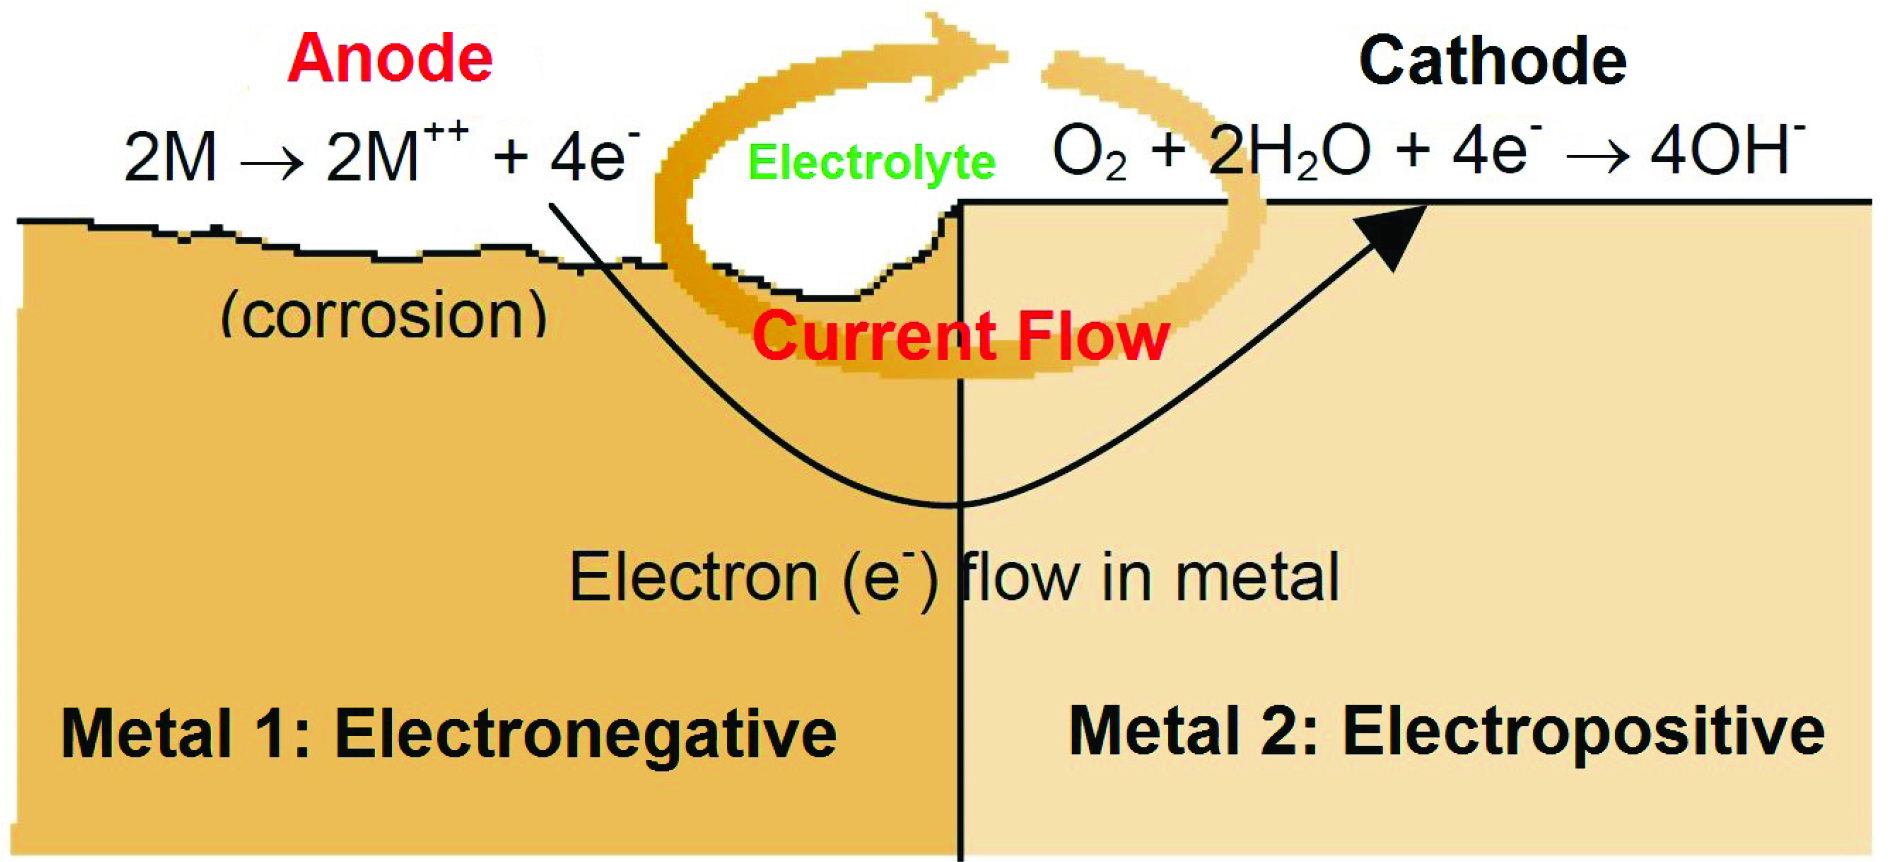 Cathodic Protection And Hazardous Areas Ee Publishers This Is Called Electron Current Flow The Flows Round Fig 1 Corrosion Cell Bimetallic In Case Of Impressed